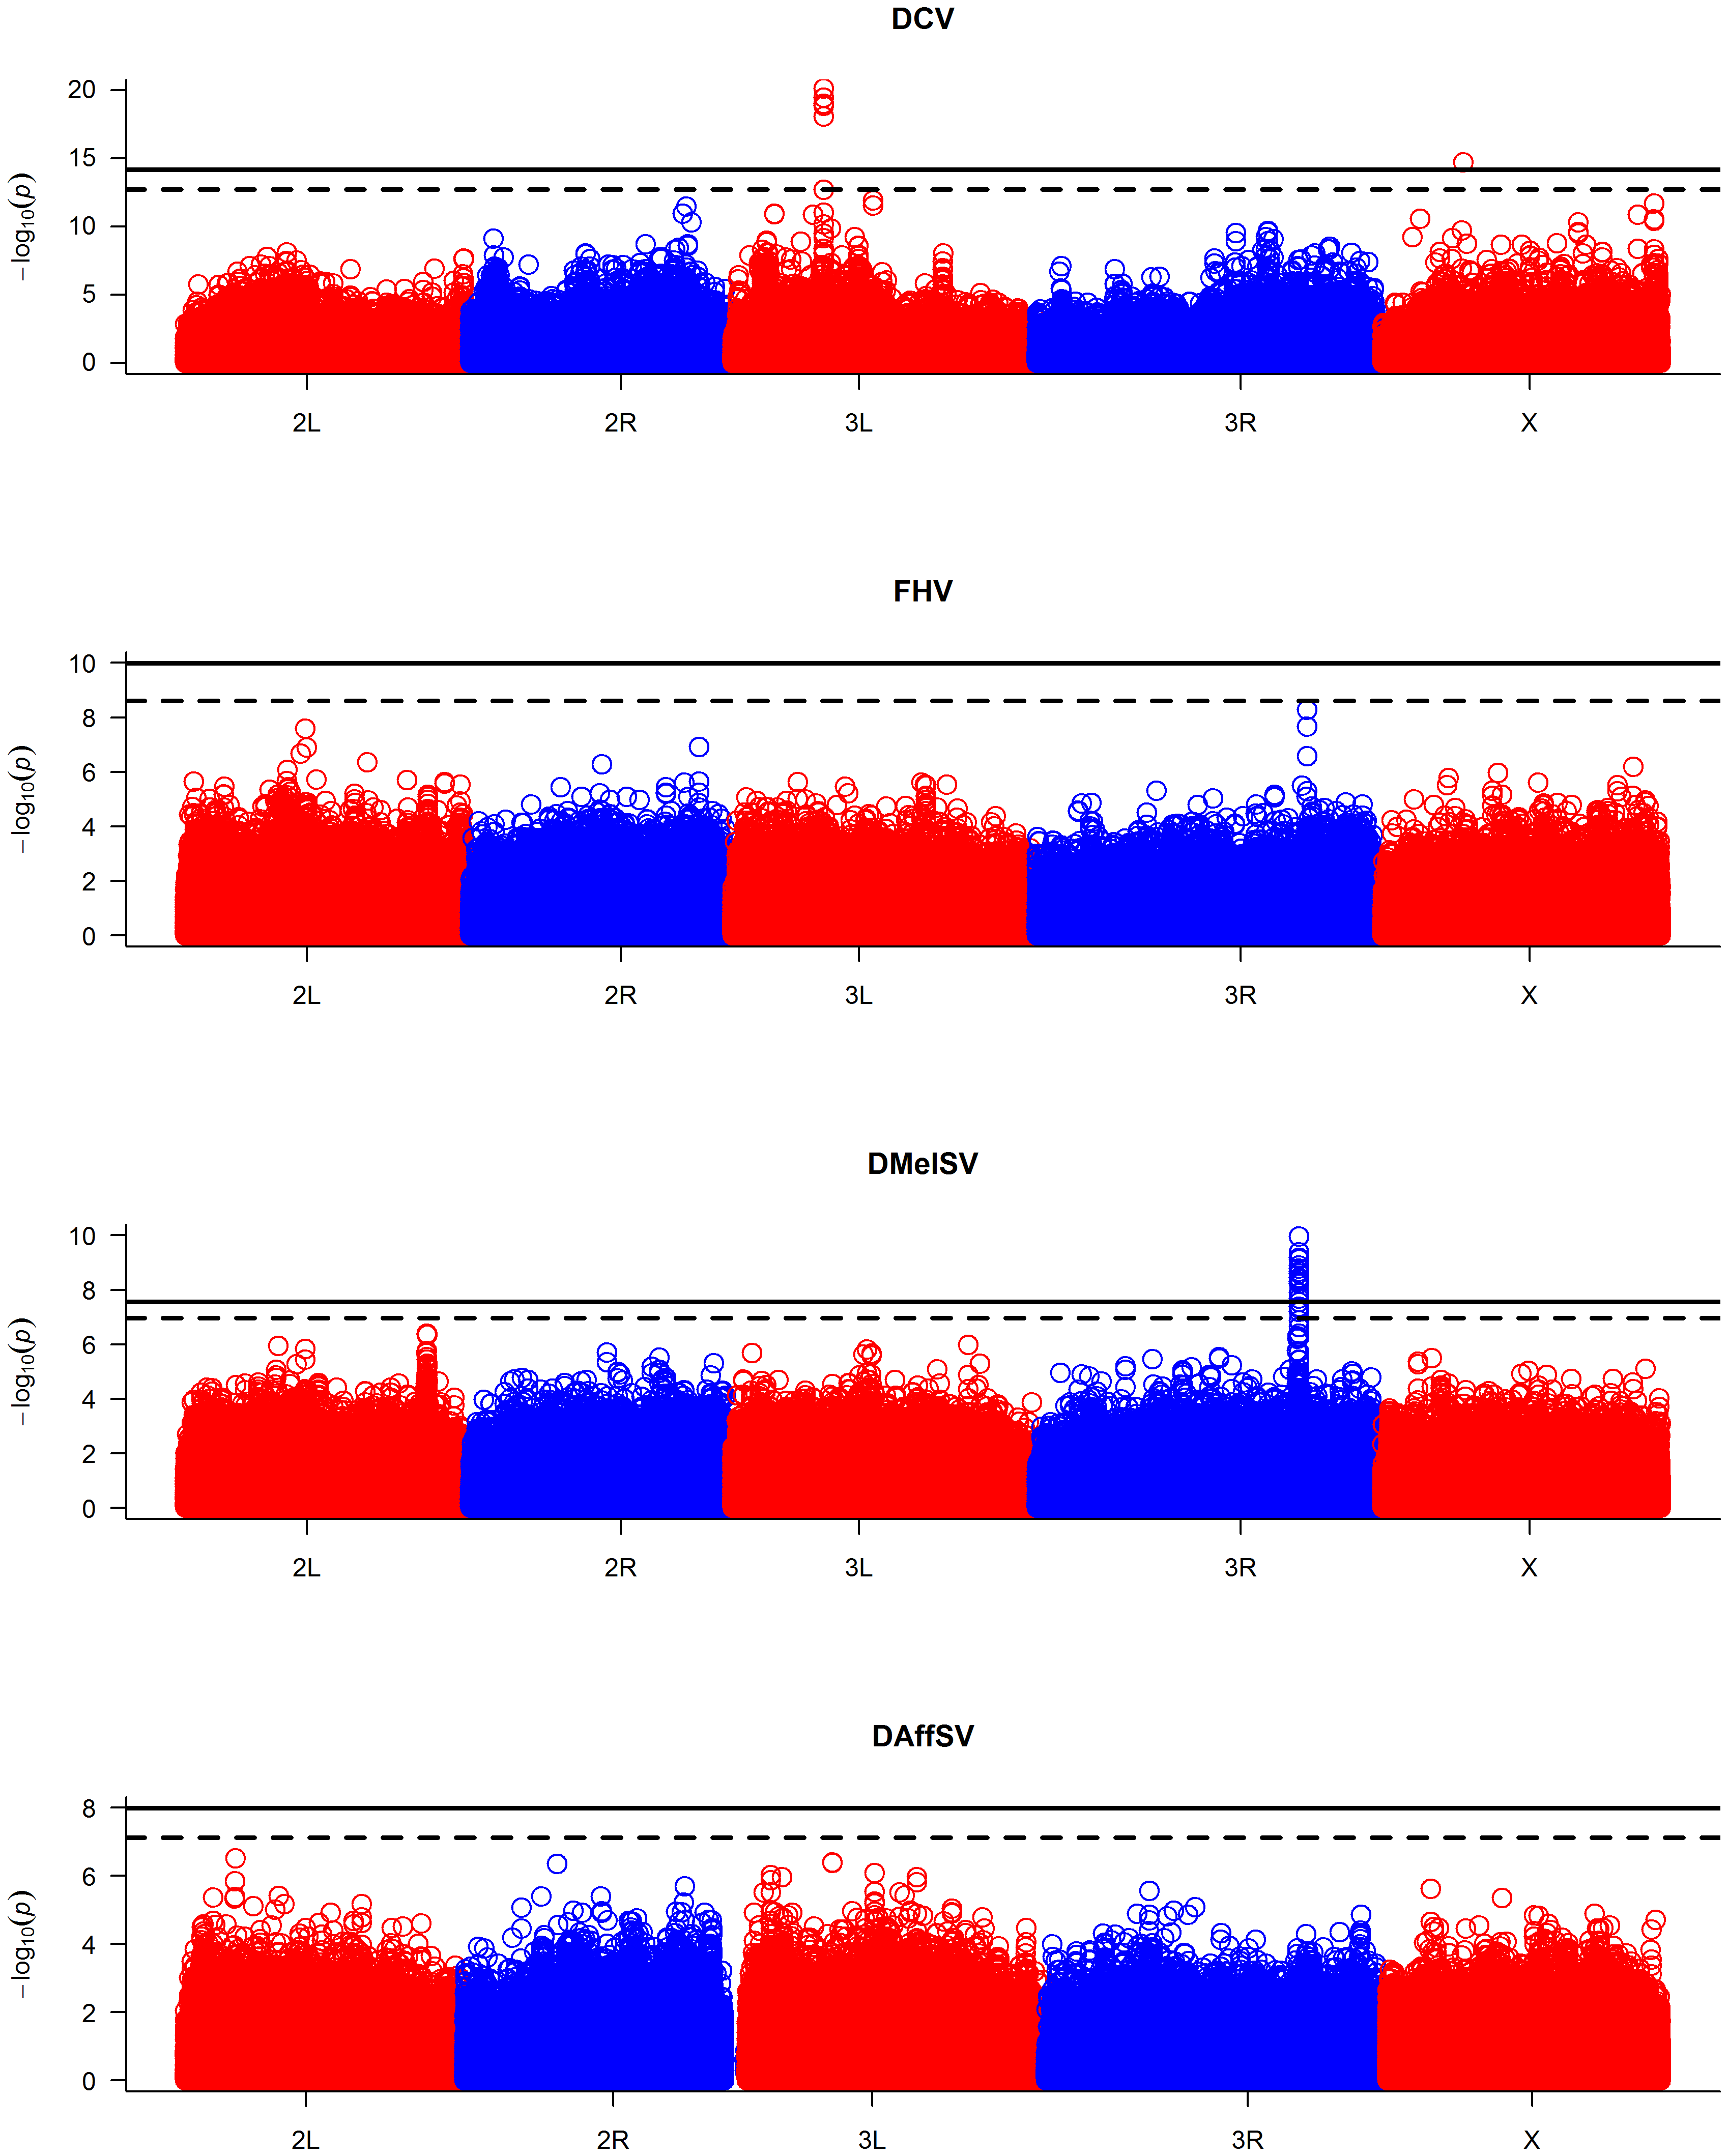 Manhattan plots of the <i>P</i>-values for the association between SNPs and virus resistance.